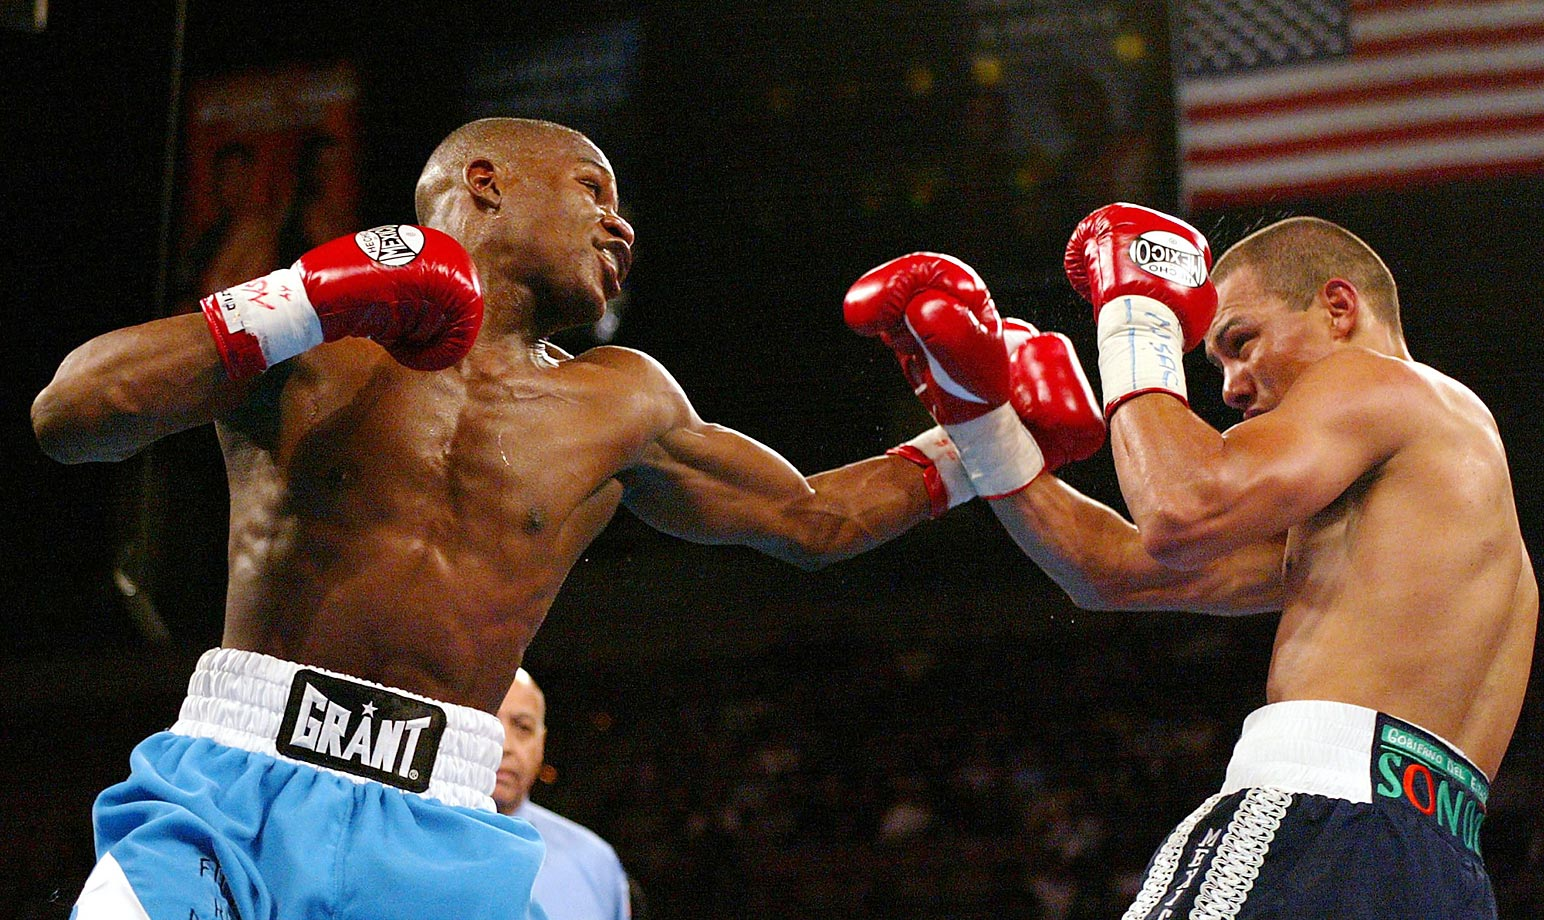 After moving up to 135 pounds, Mayweather captured and retained the WBC and Ring lightweight titles with two unanimous decisions over Castillo.